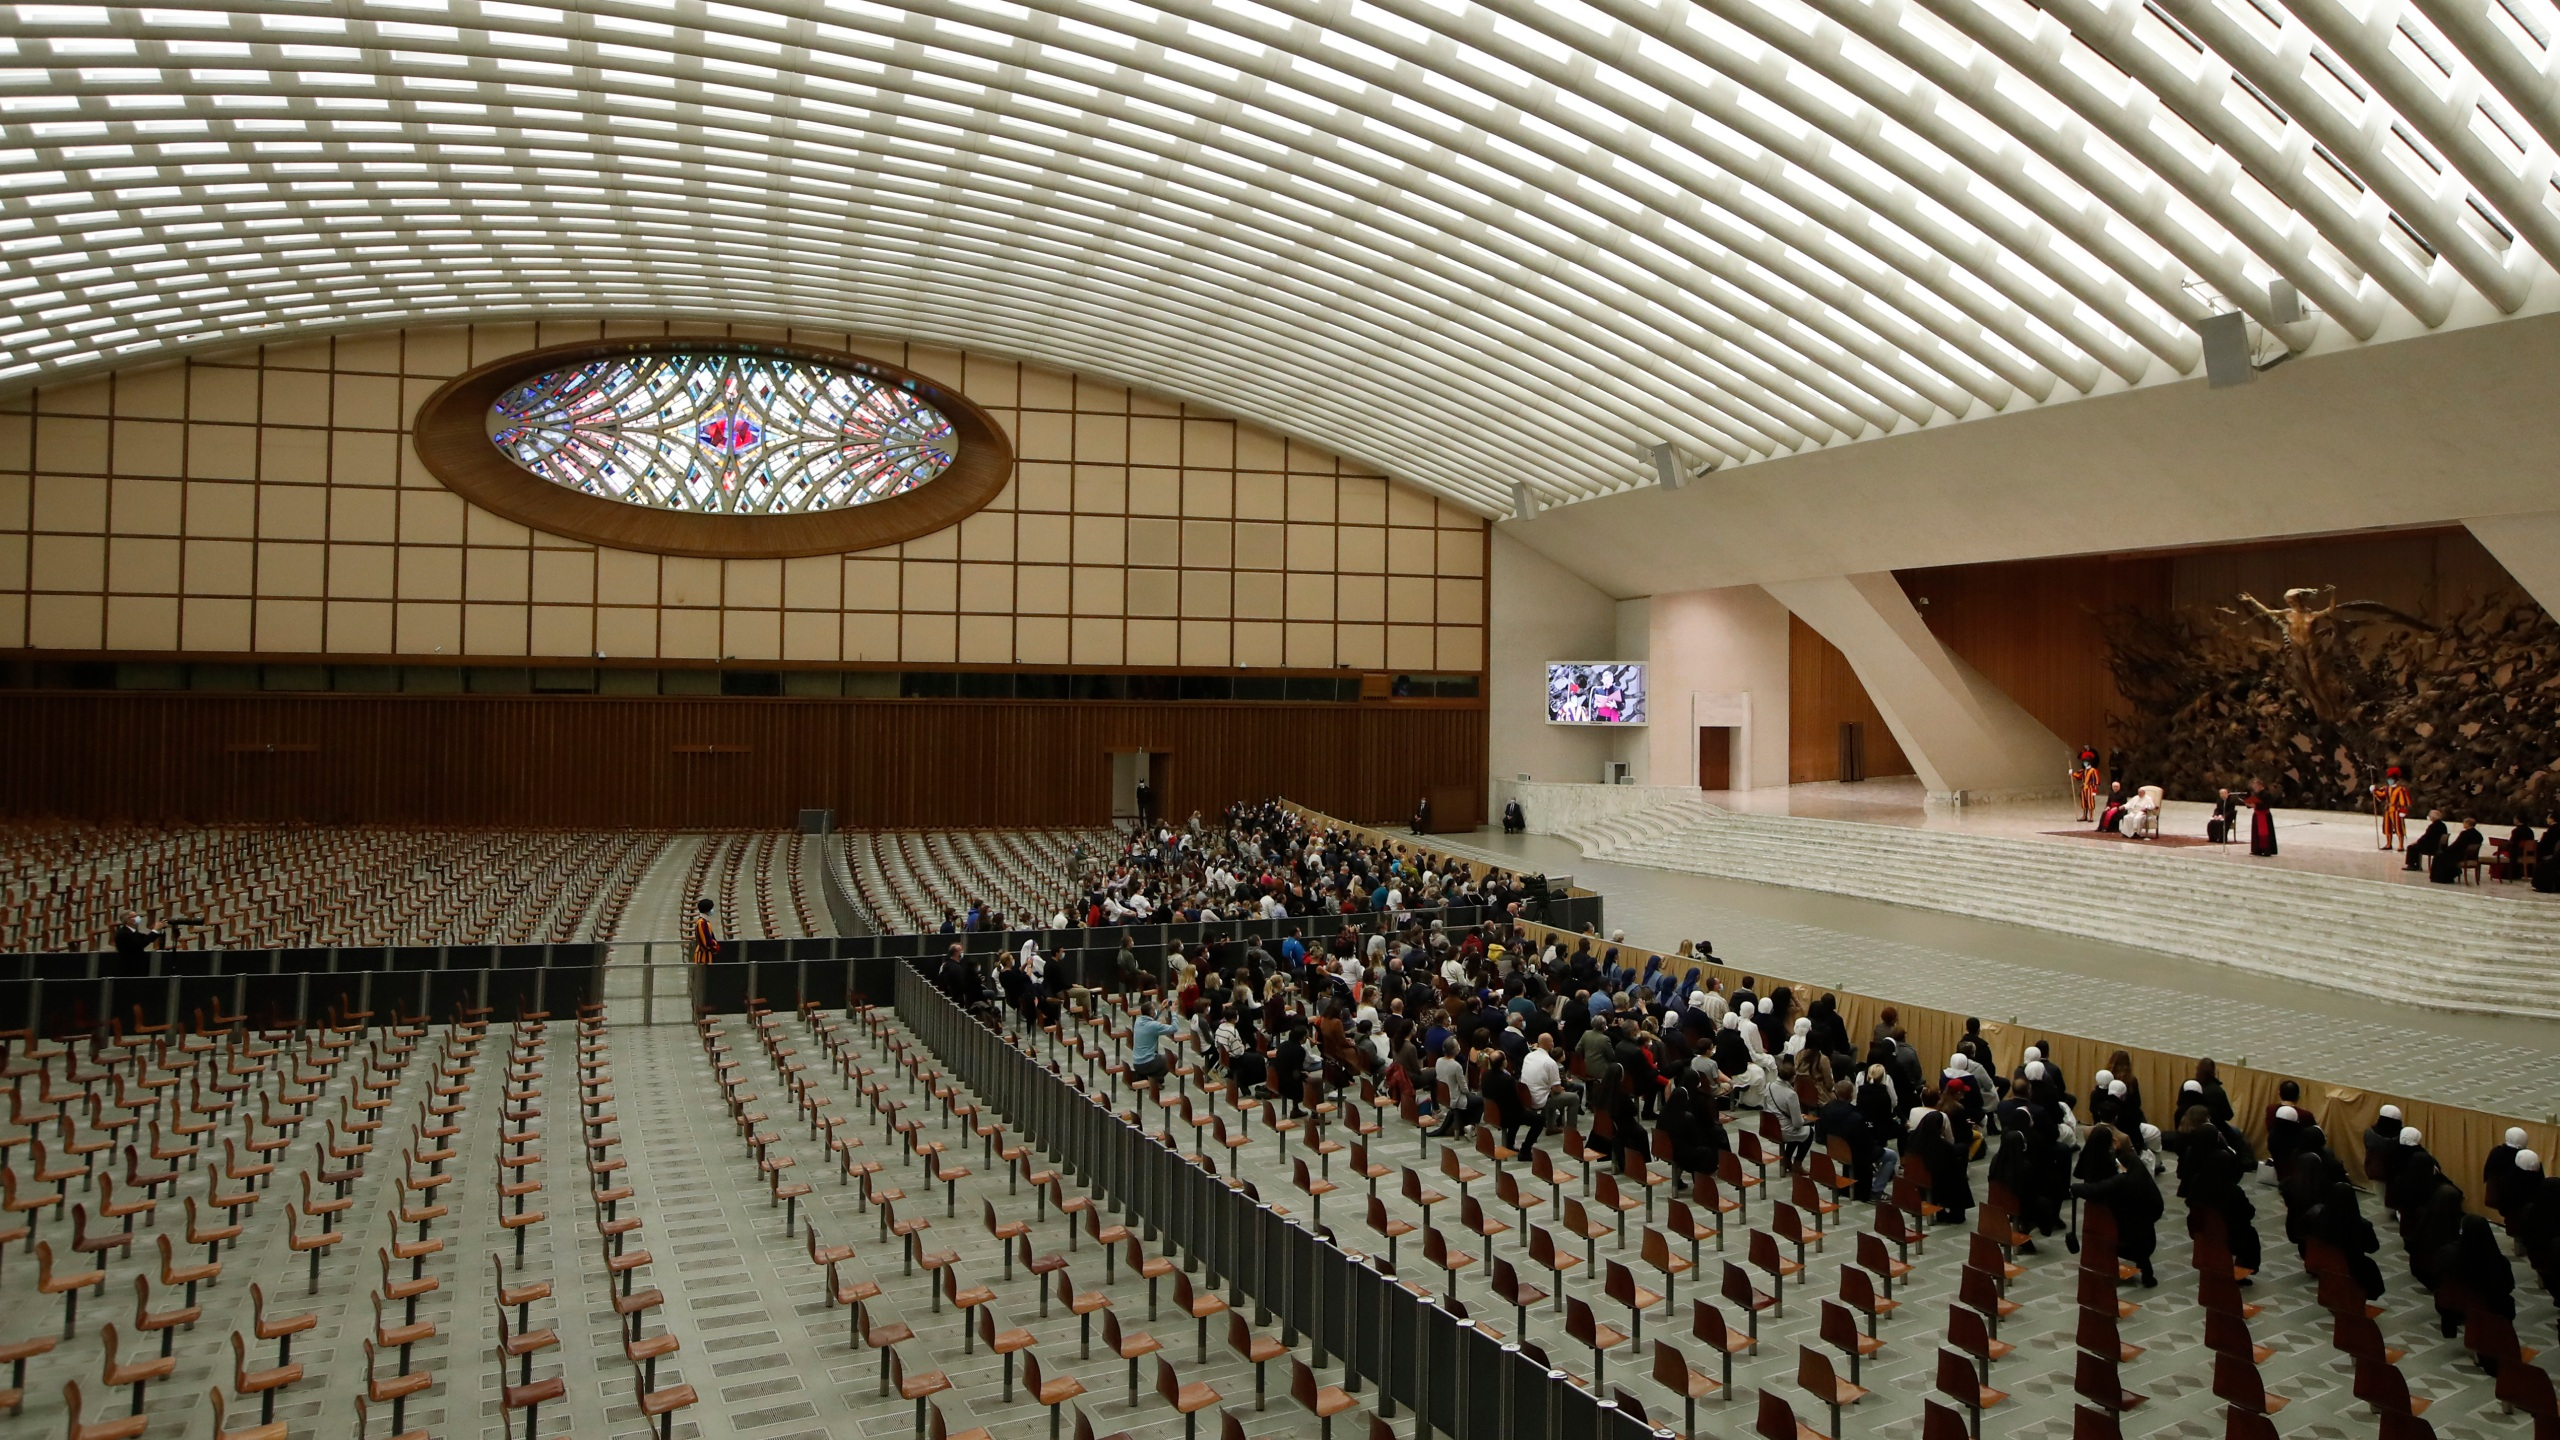 Pope Francis delivers his speech in the Paul VI Hall at the Vatican for his weekly general audience on Oct. 28, 2020. (Alessandra Tarantino/Associated Press)